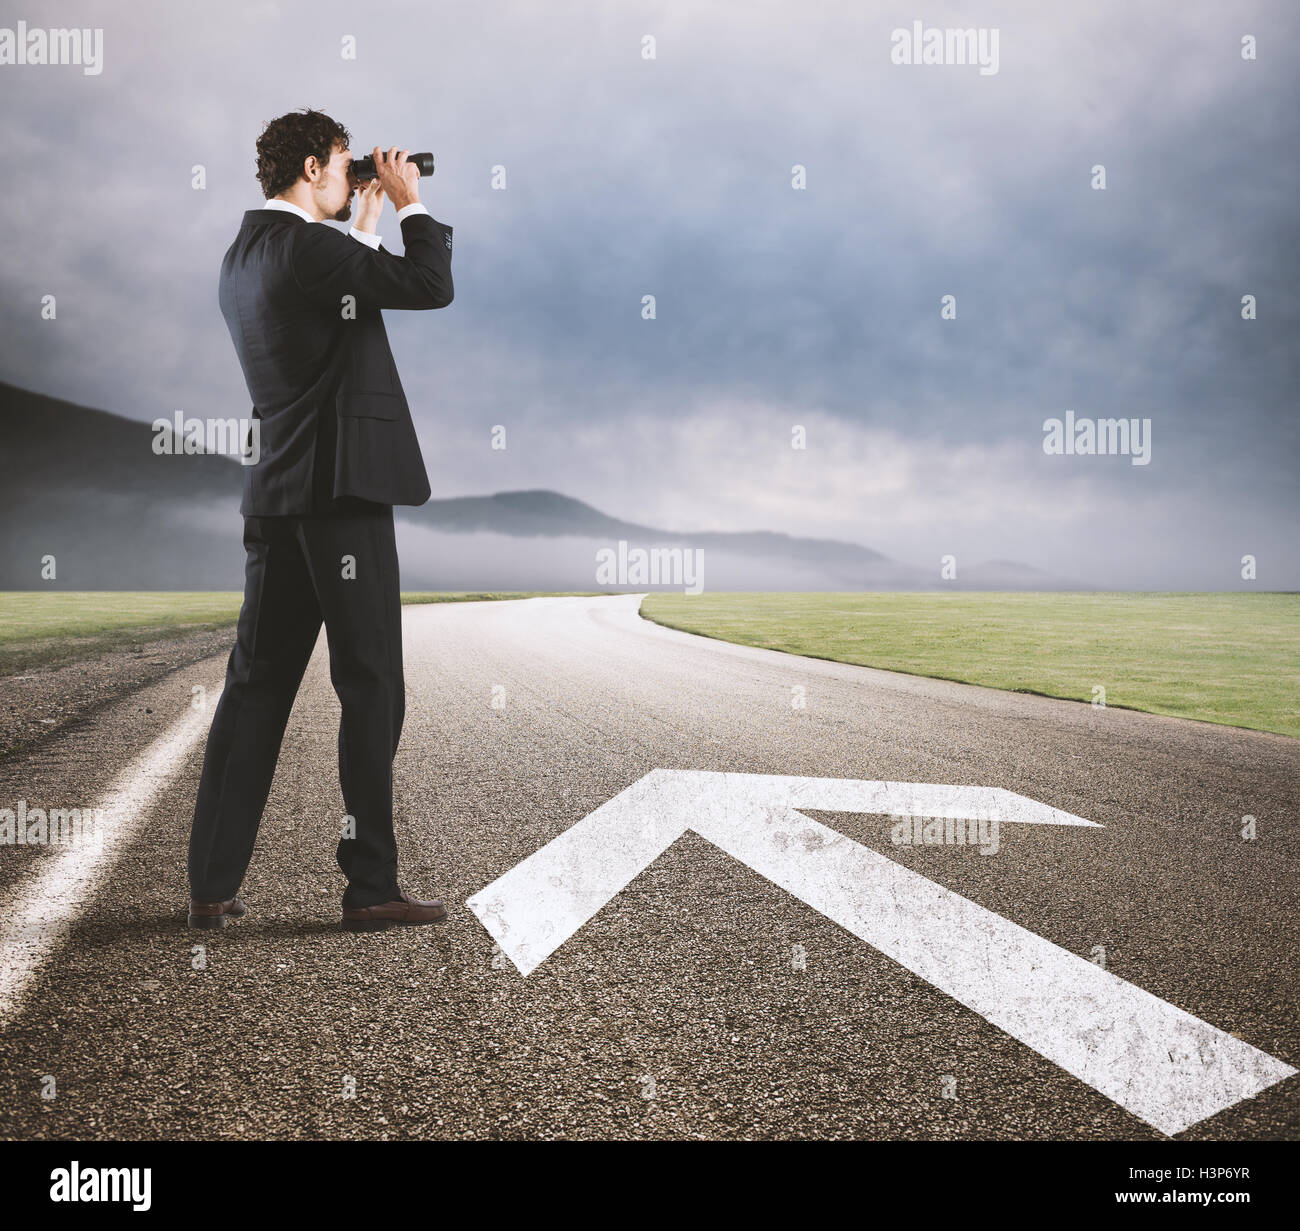 Follow the road to success - Stock Image